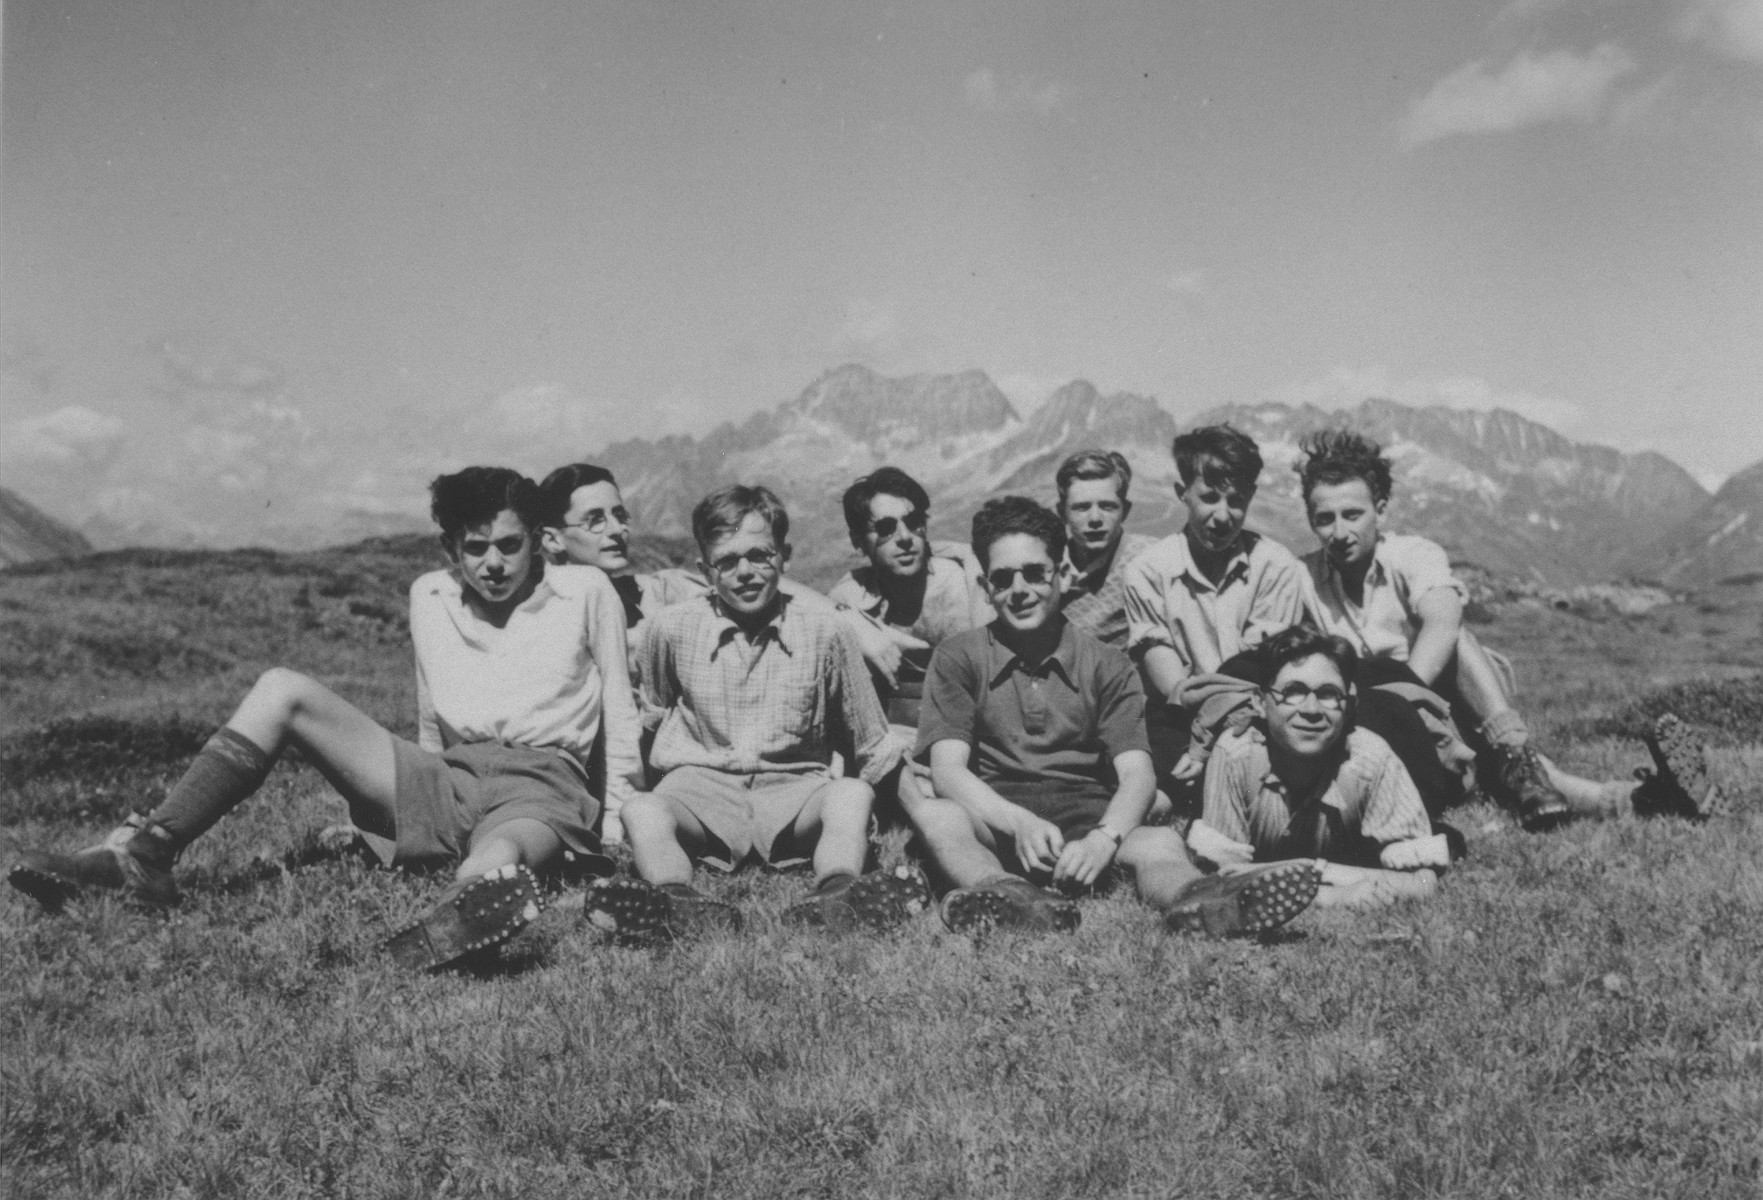 Boys from Hôme de la Forêt children's home on a summer excursion near the source of the Rhine.